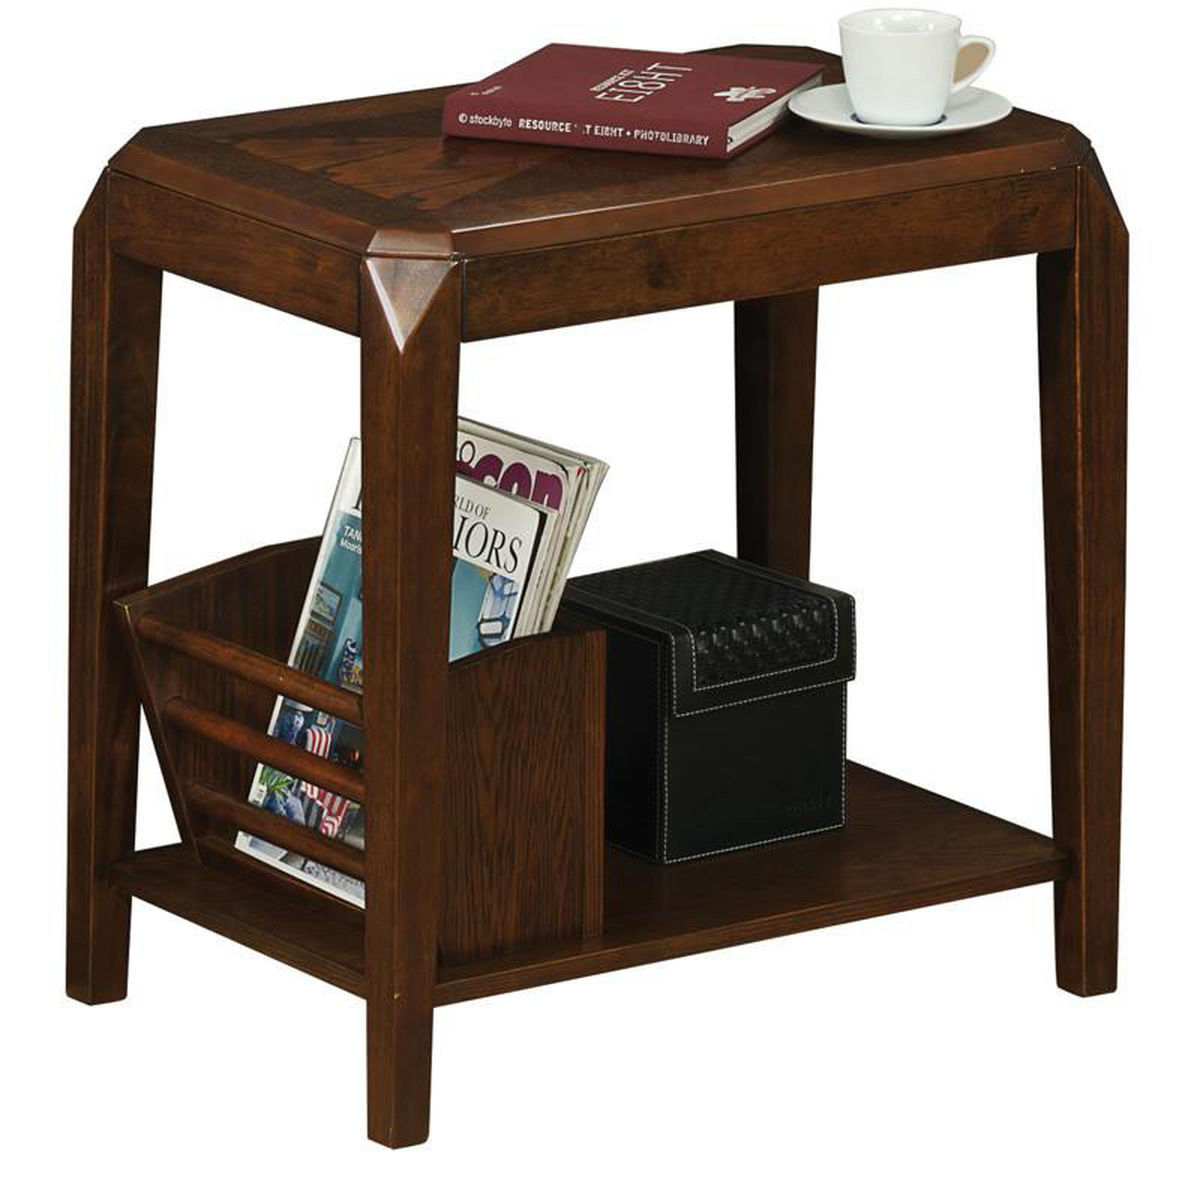 brown oak accent table bizchair monarch specialties msp main corner our beveled with storage shelf now desk lamps uttermost gin cube jcpenney bag gold end target chairs short